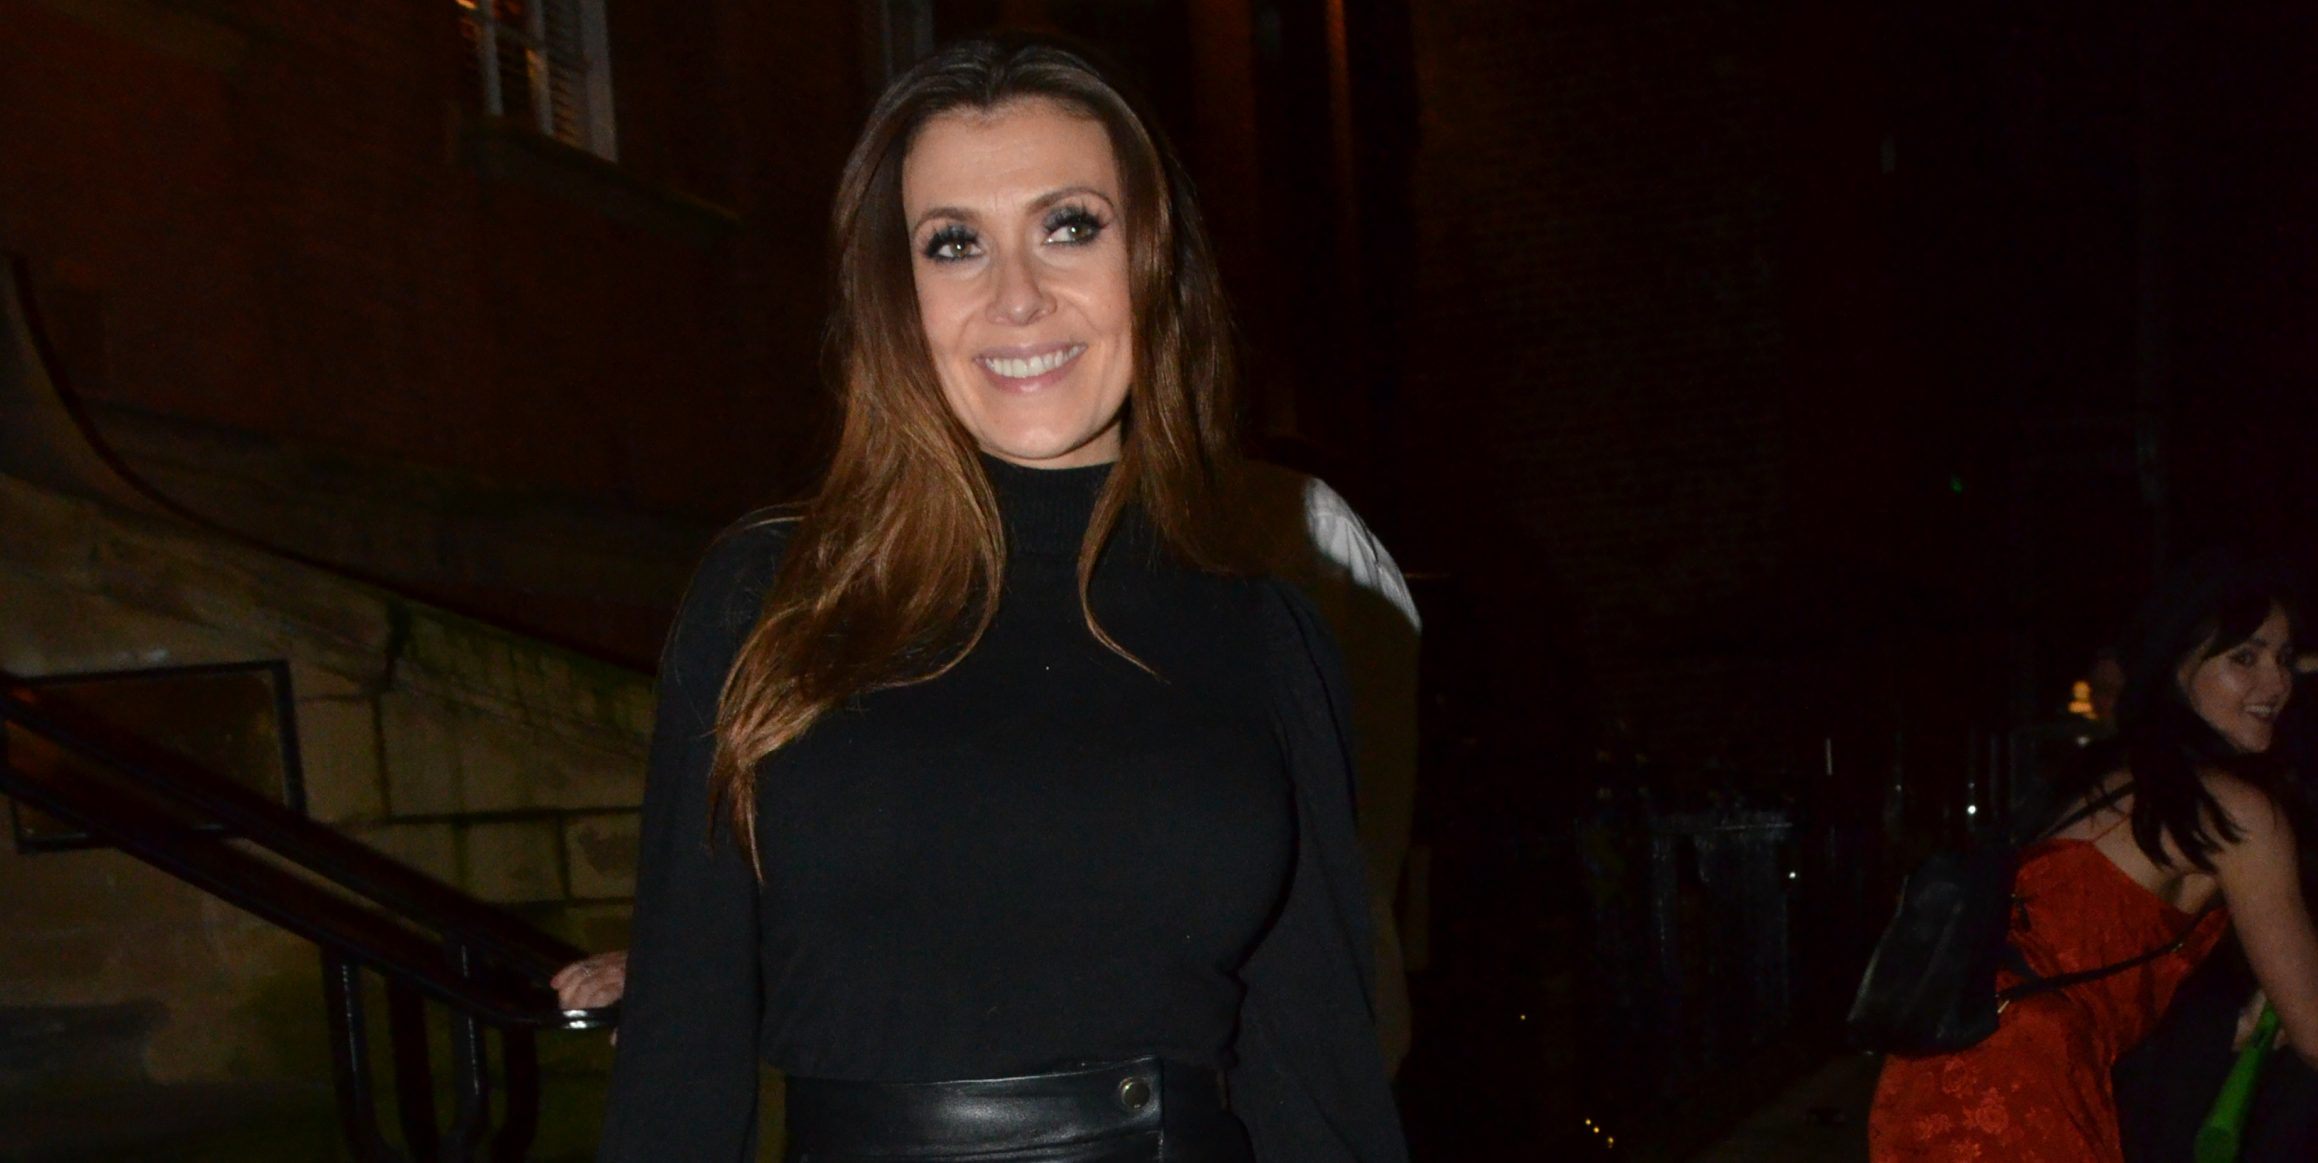 Coronation Street's Kym Marsh shares a photo on a night out with co-stars